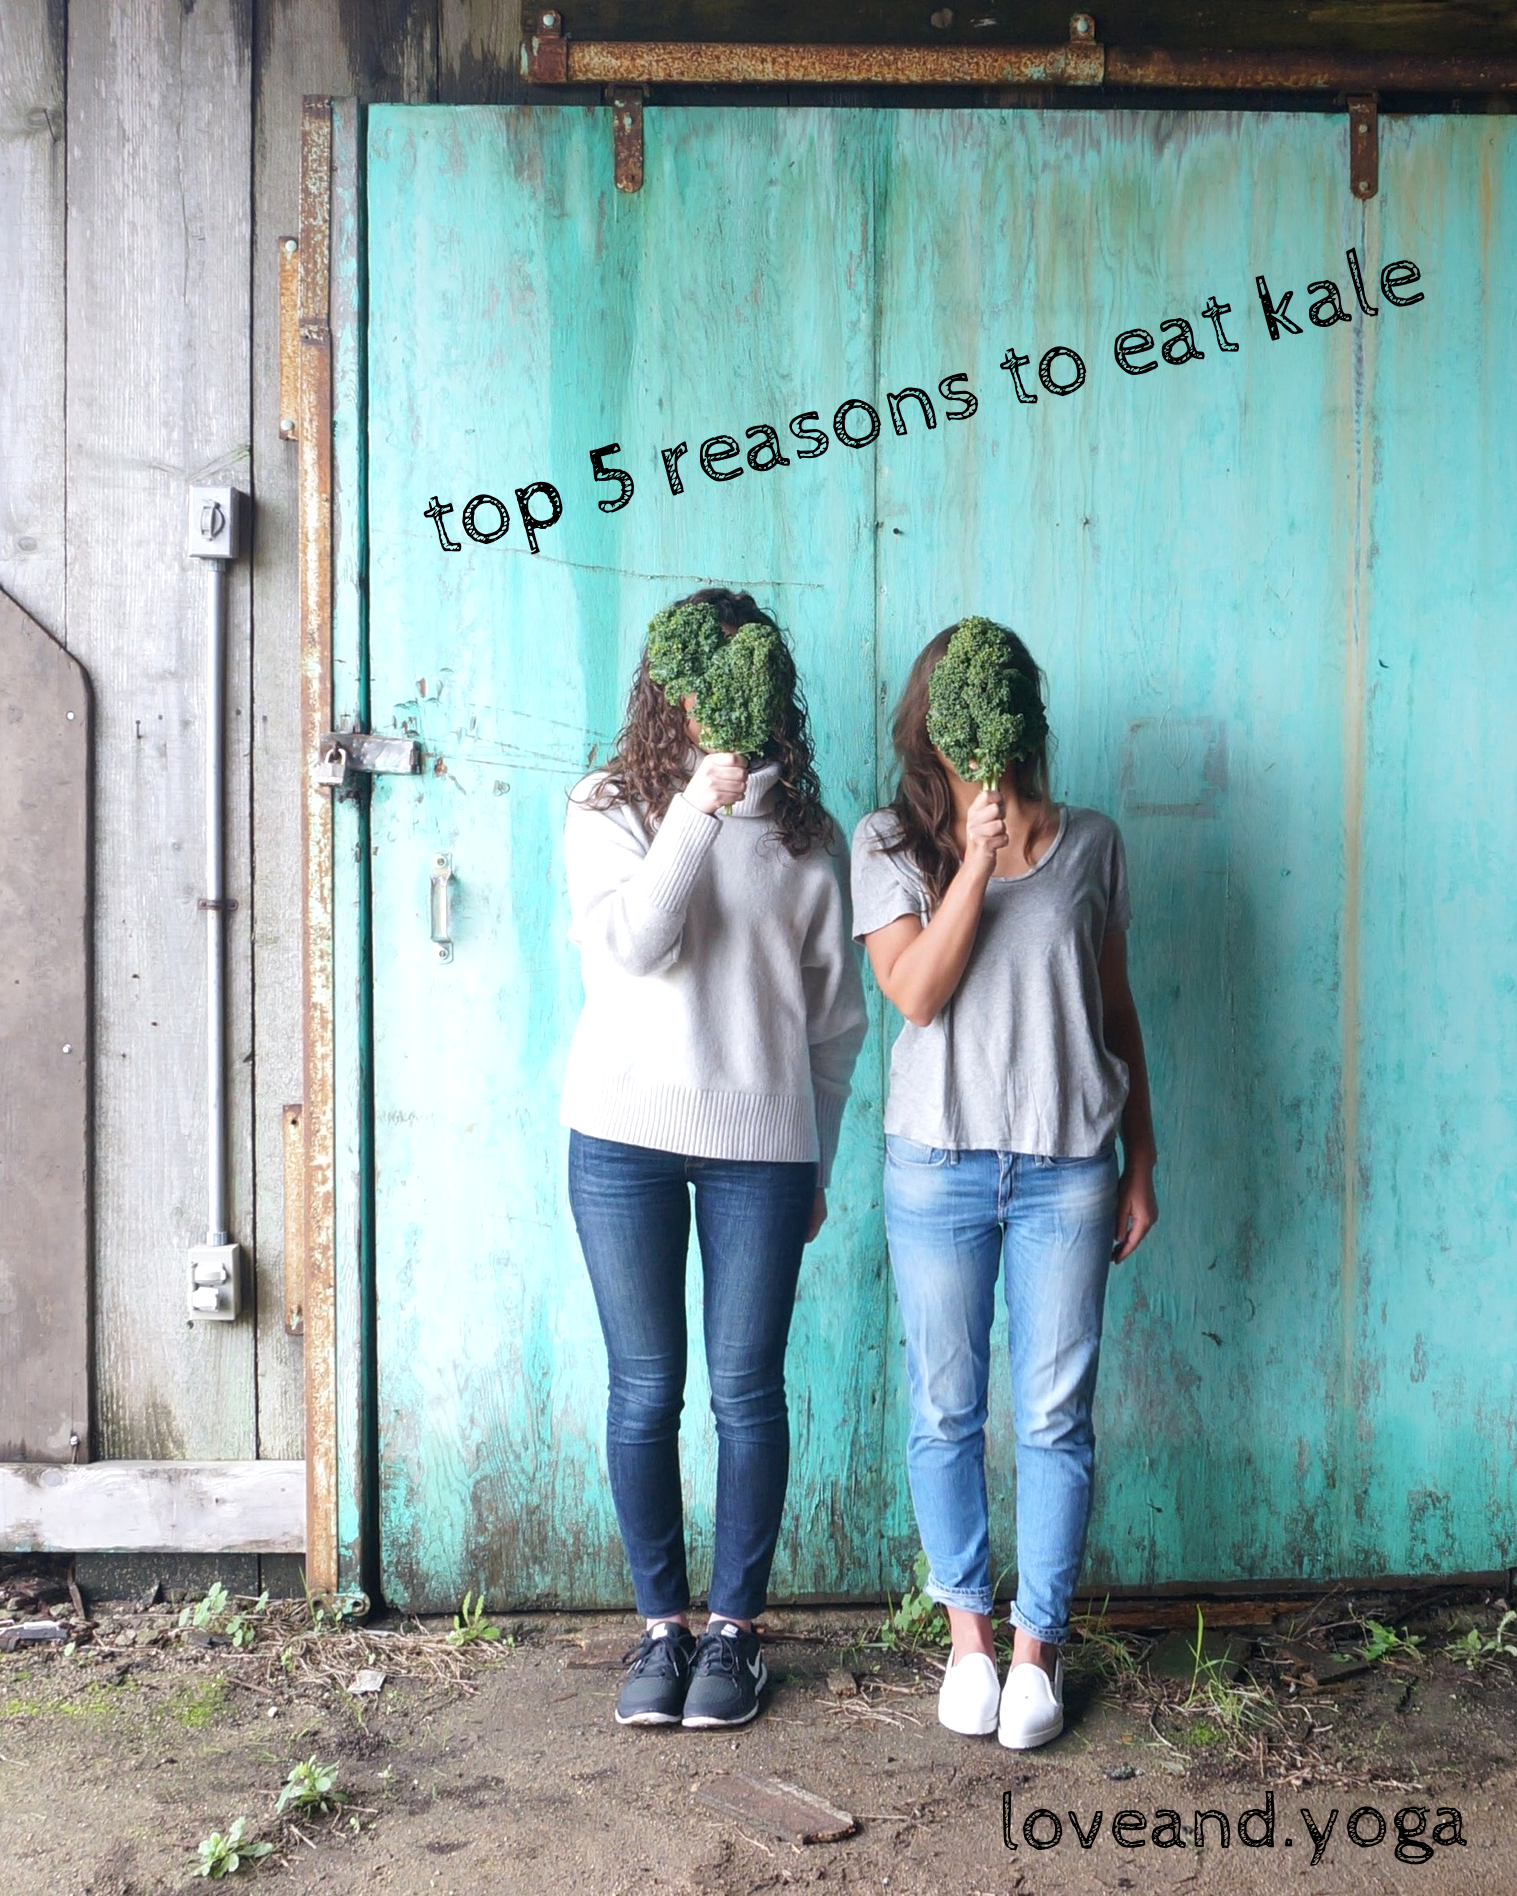 top 5 reasons to eat kale